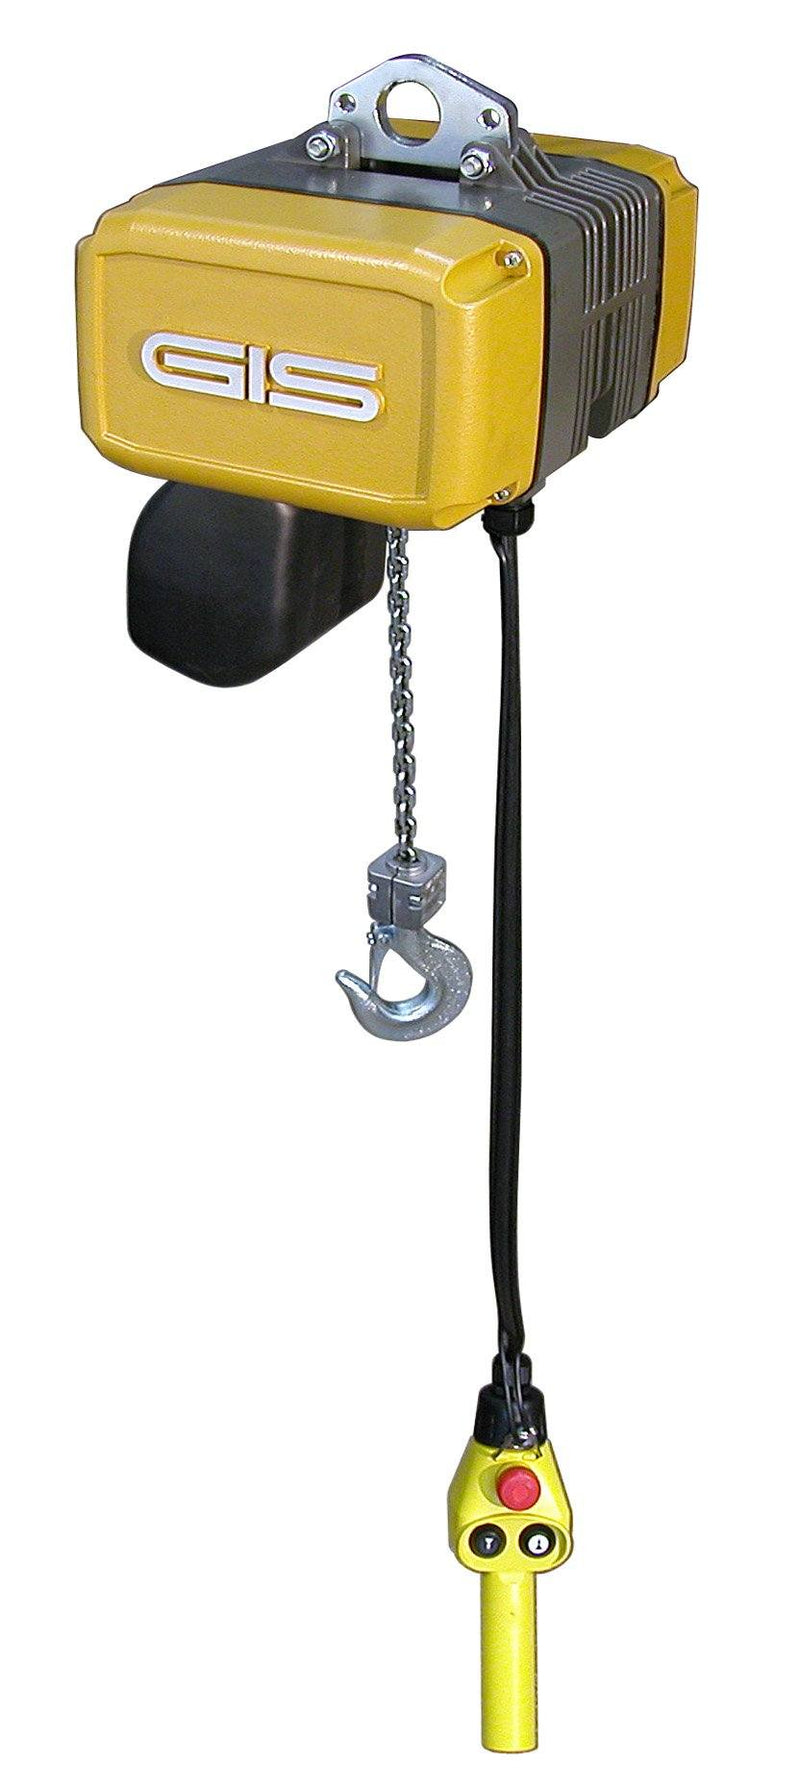 GIS GCH Series Electric Chain Hoists - 400V, 3 Phase Hoists 50Hz - LTM Lift Turn Move